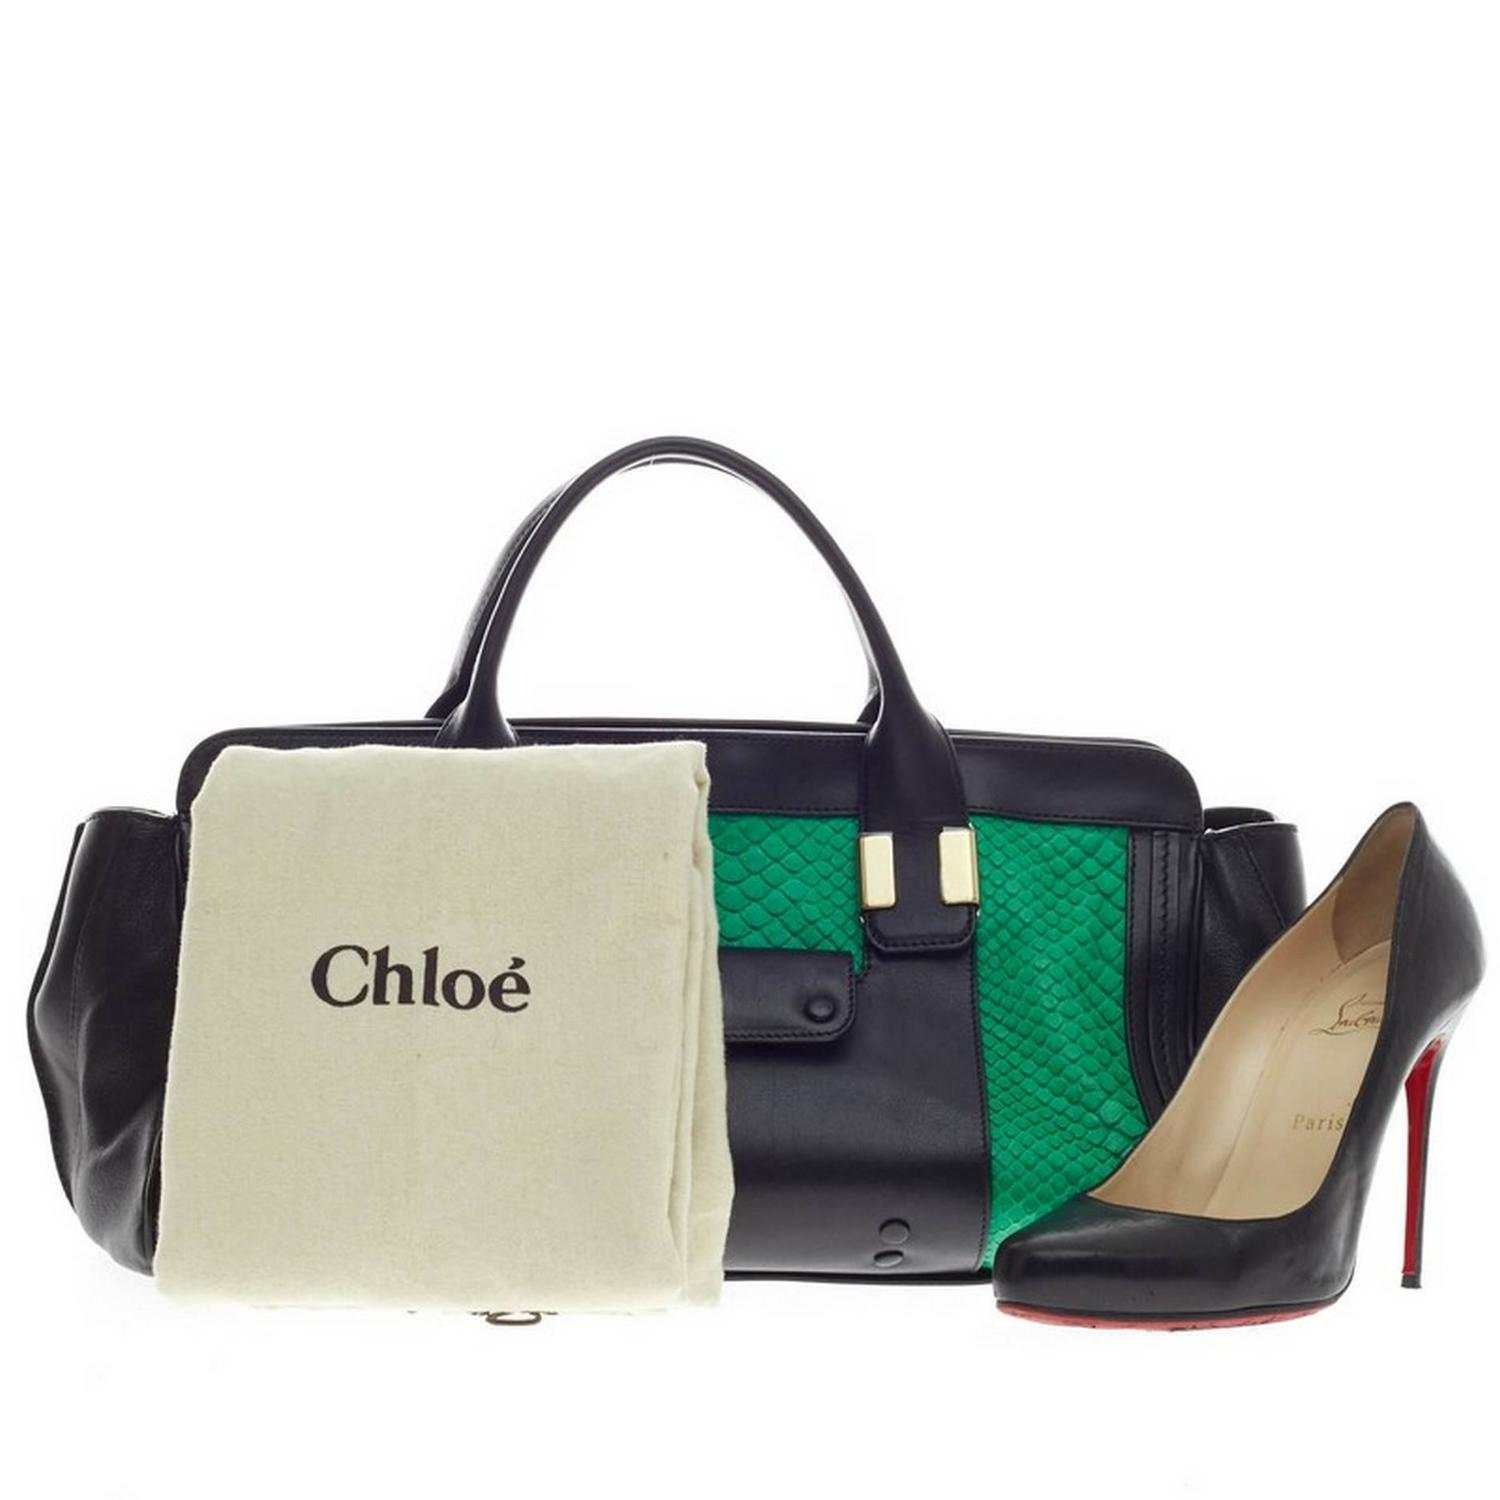 replica chloe purses - chloe alice satchel, replica chloe purse